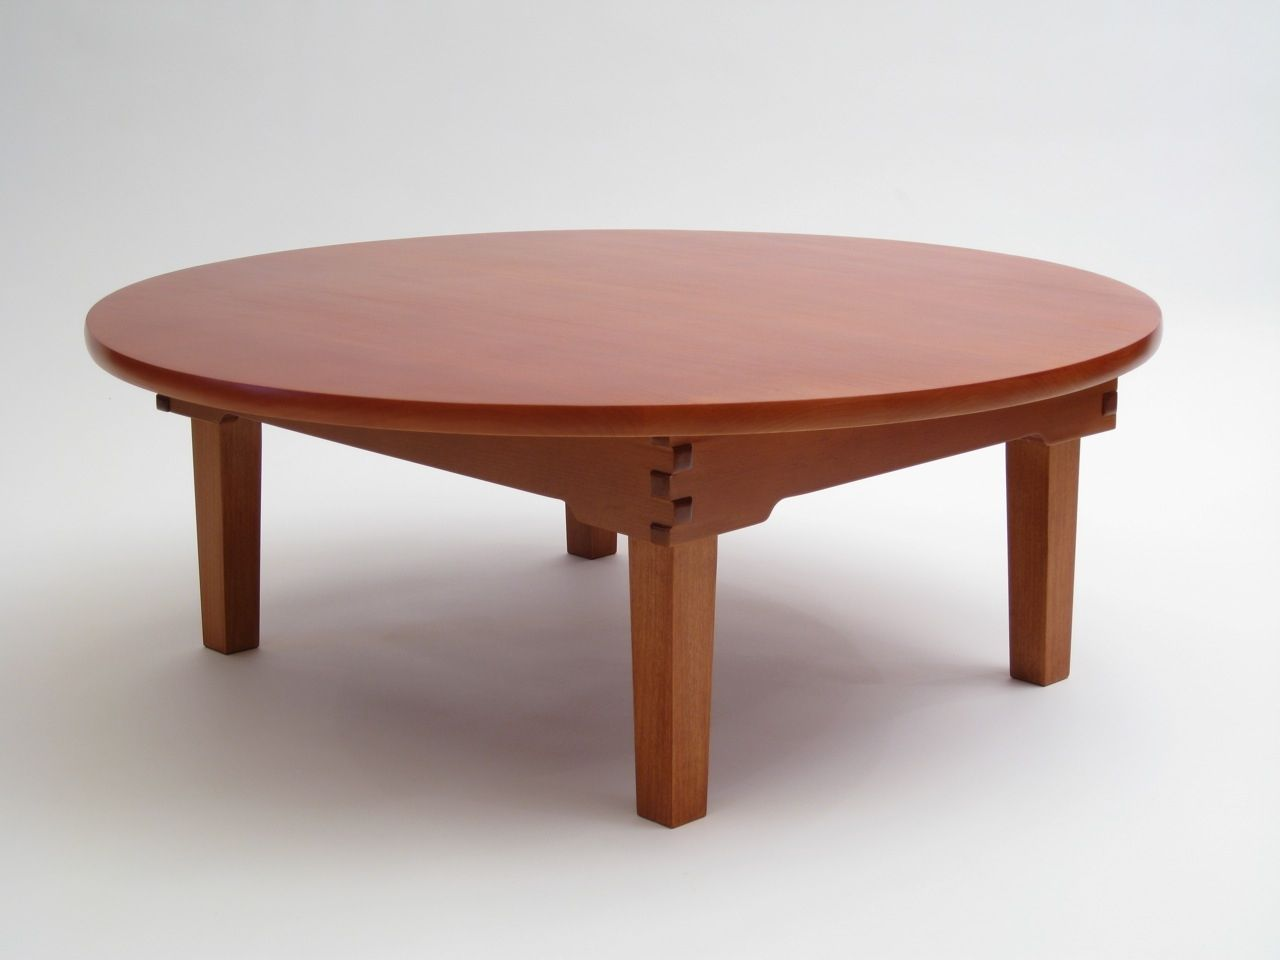 Custom Made Japanese Chabudai A Low Folding Table by  : 54930077 from www.custommade.com size 1280 x 960 jpeg 46kB